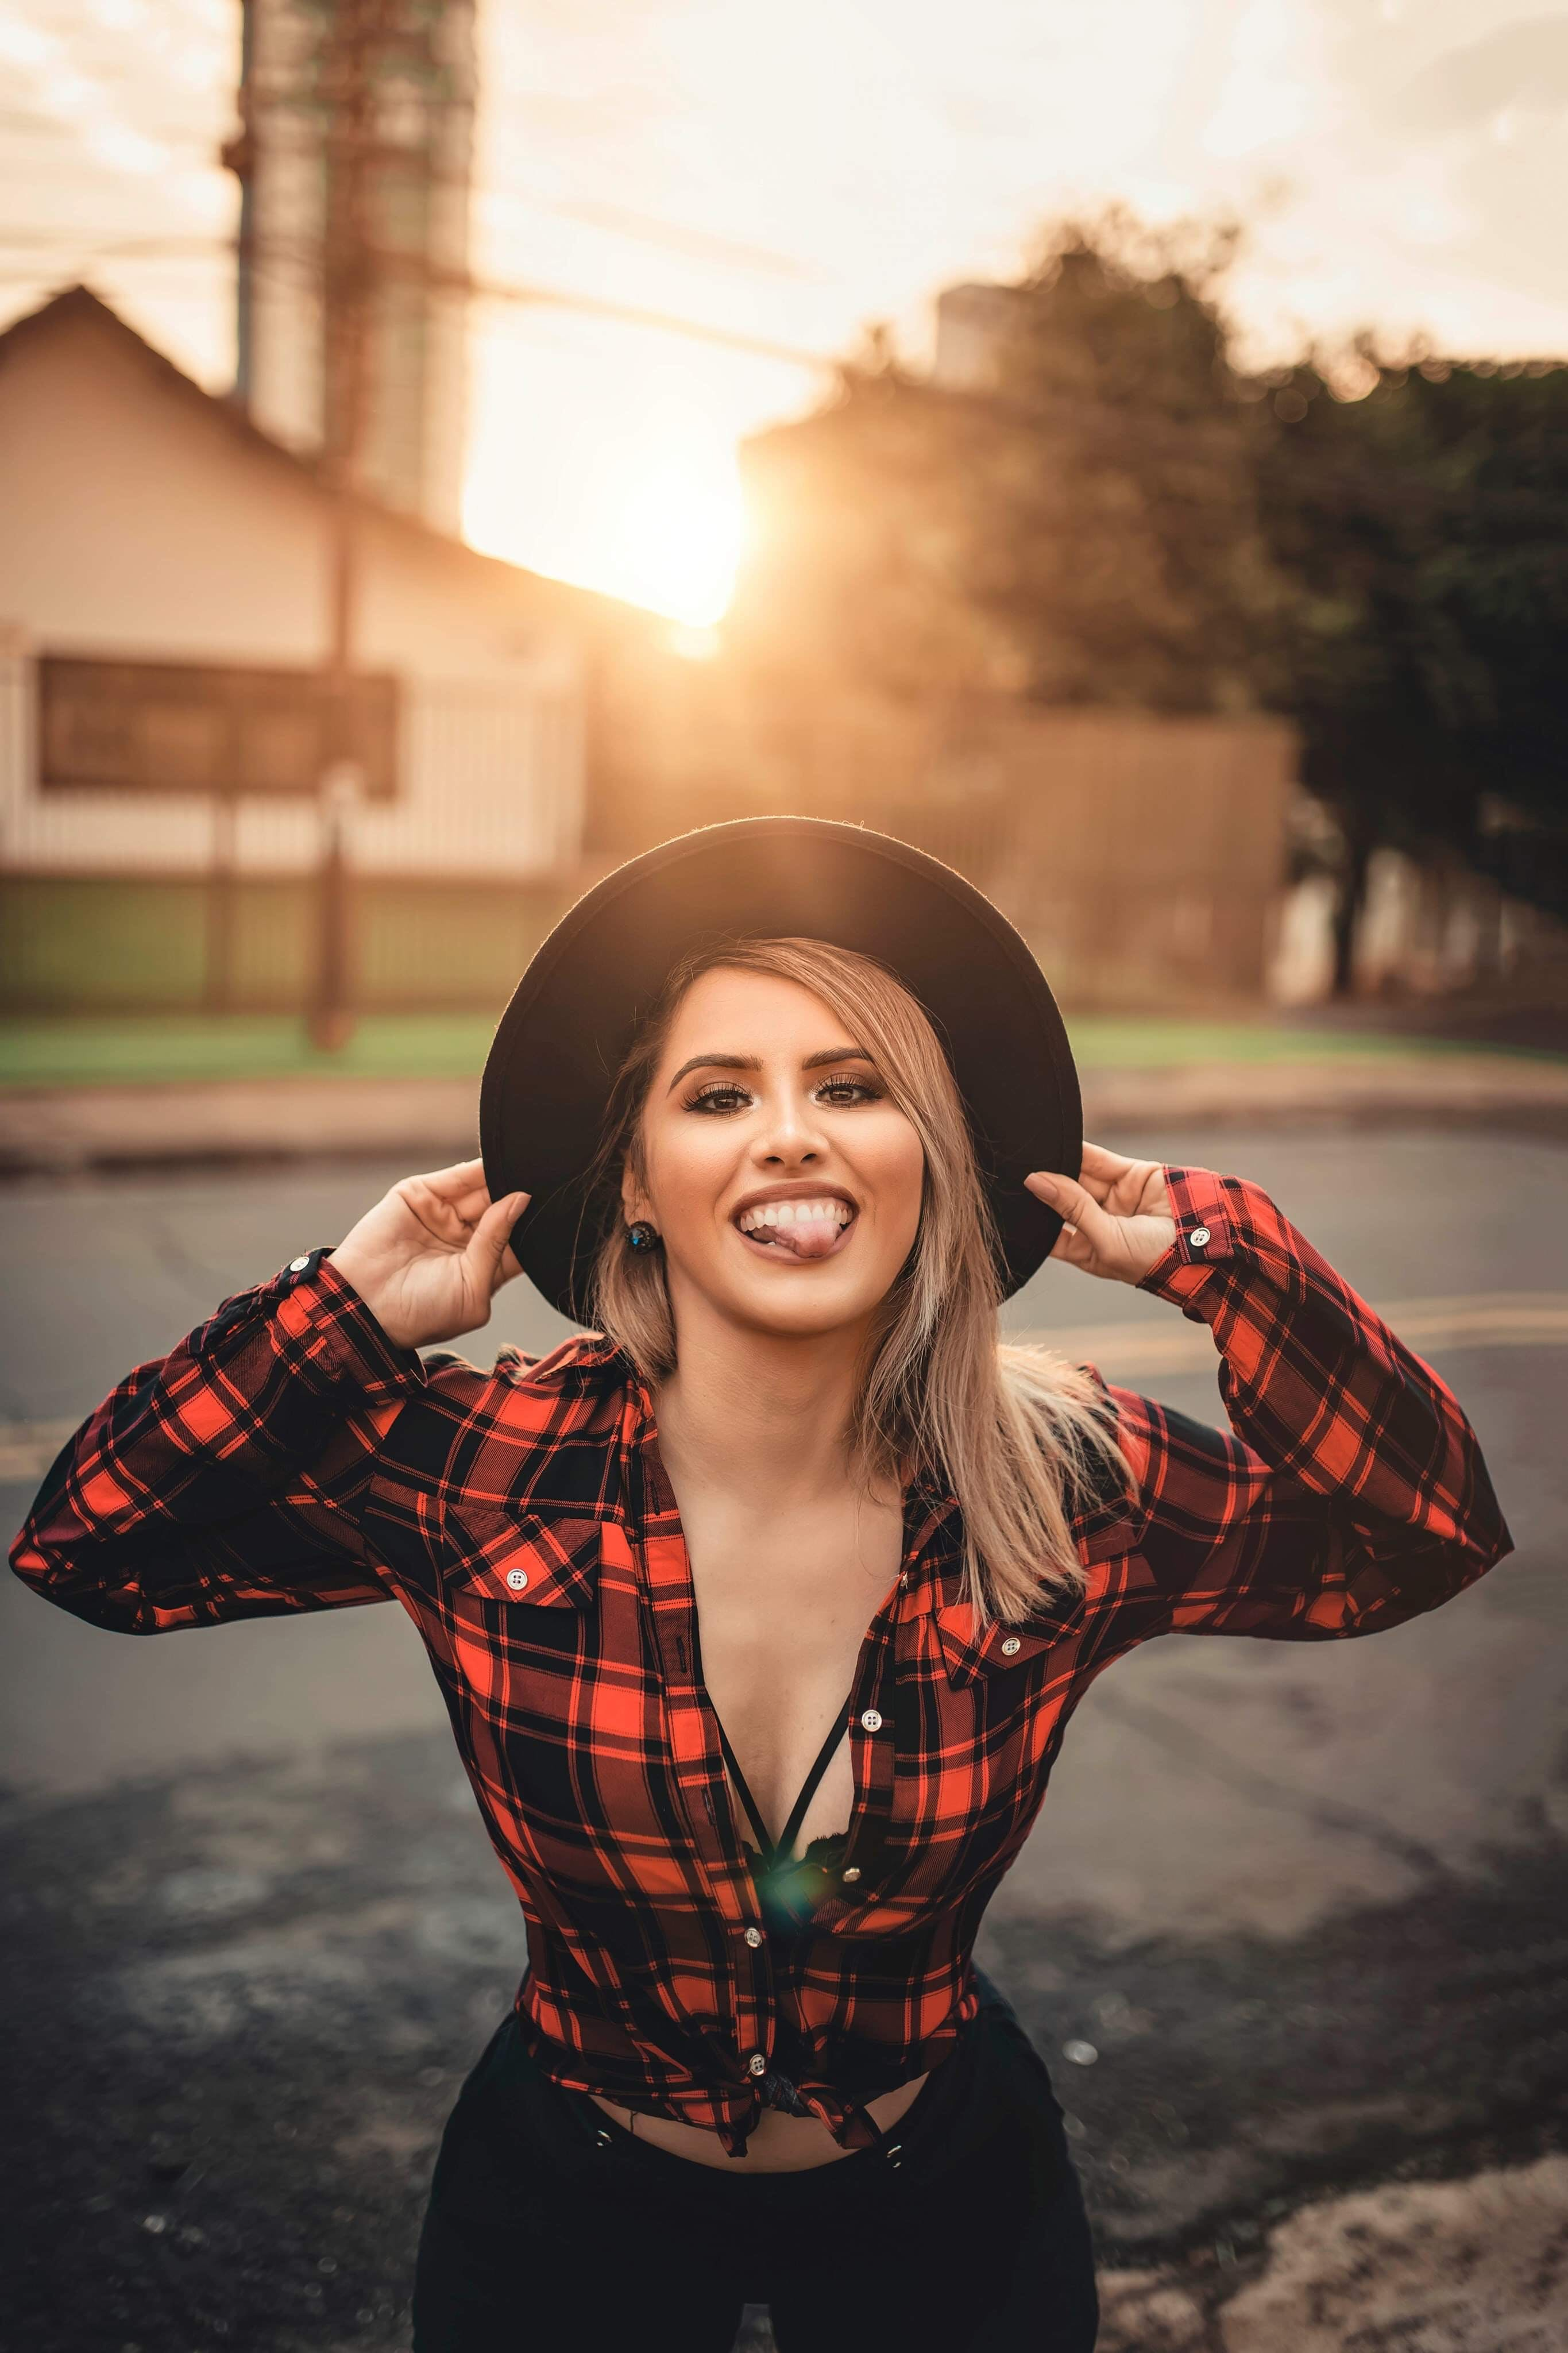 Woman In Plaid Top